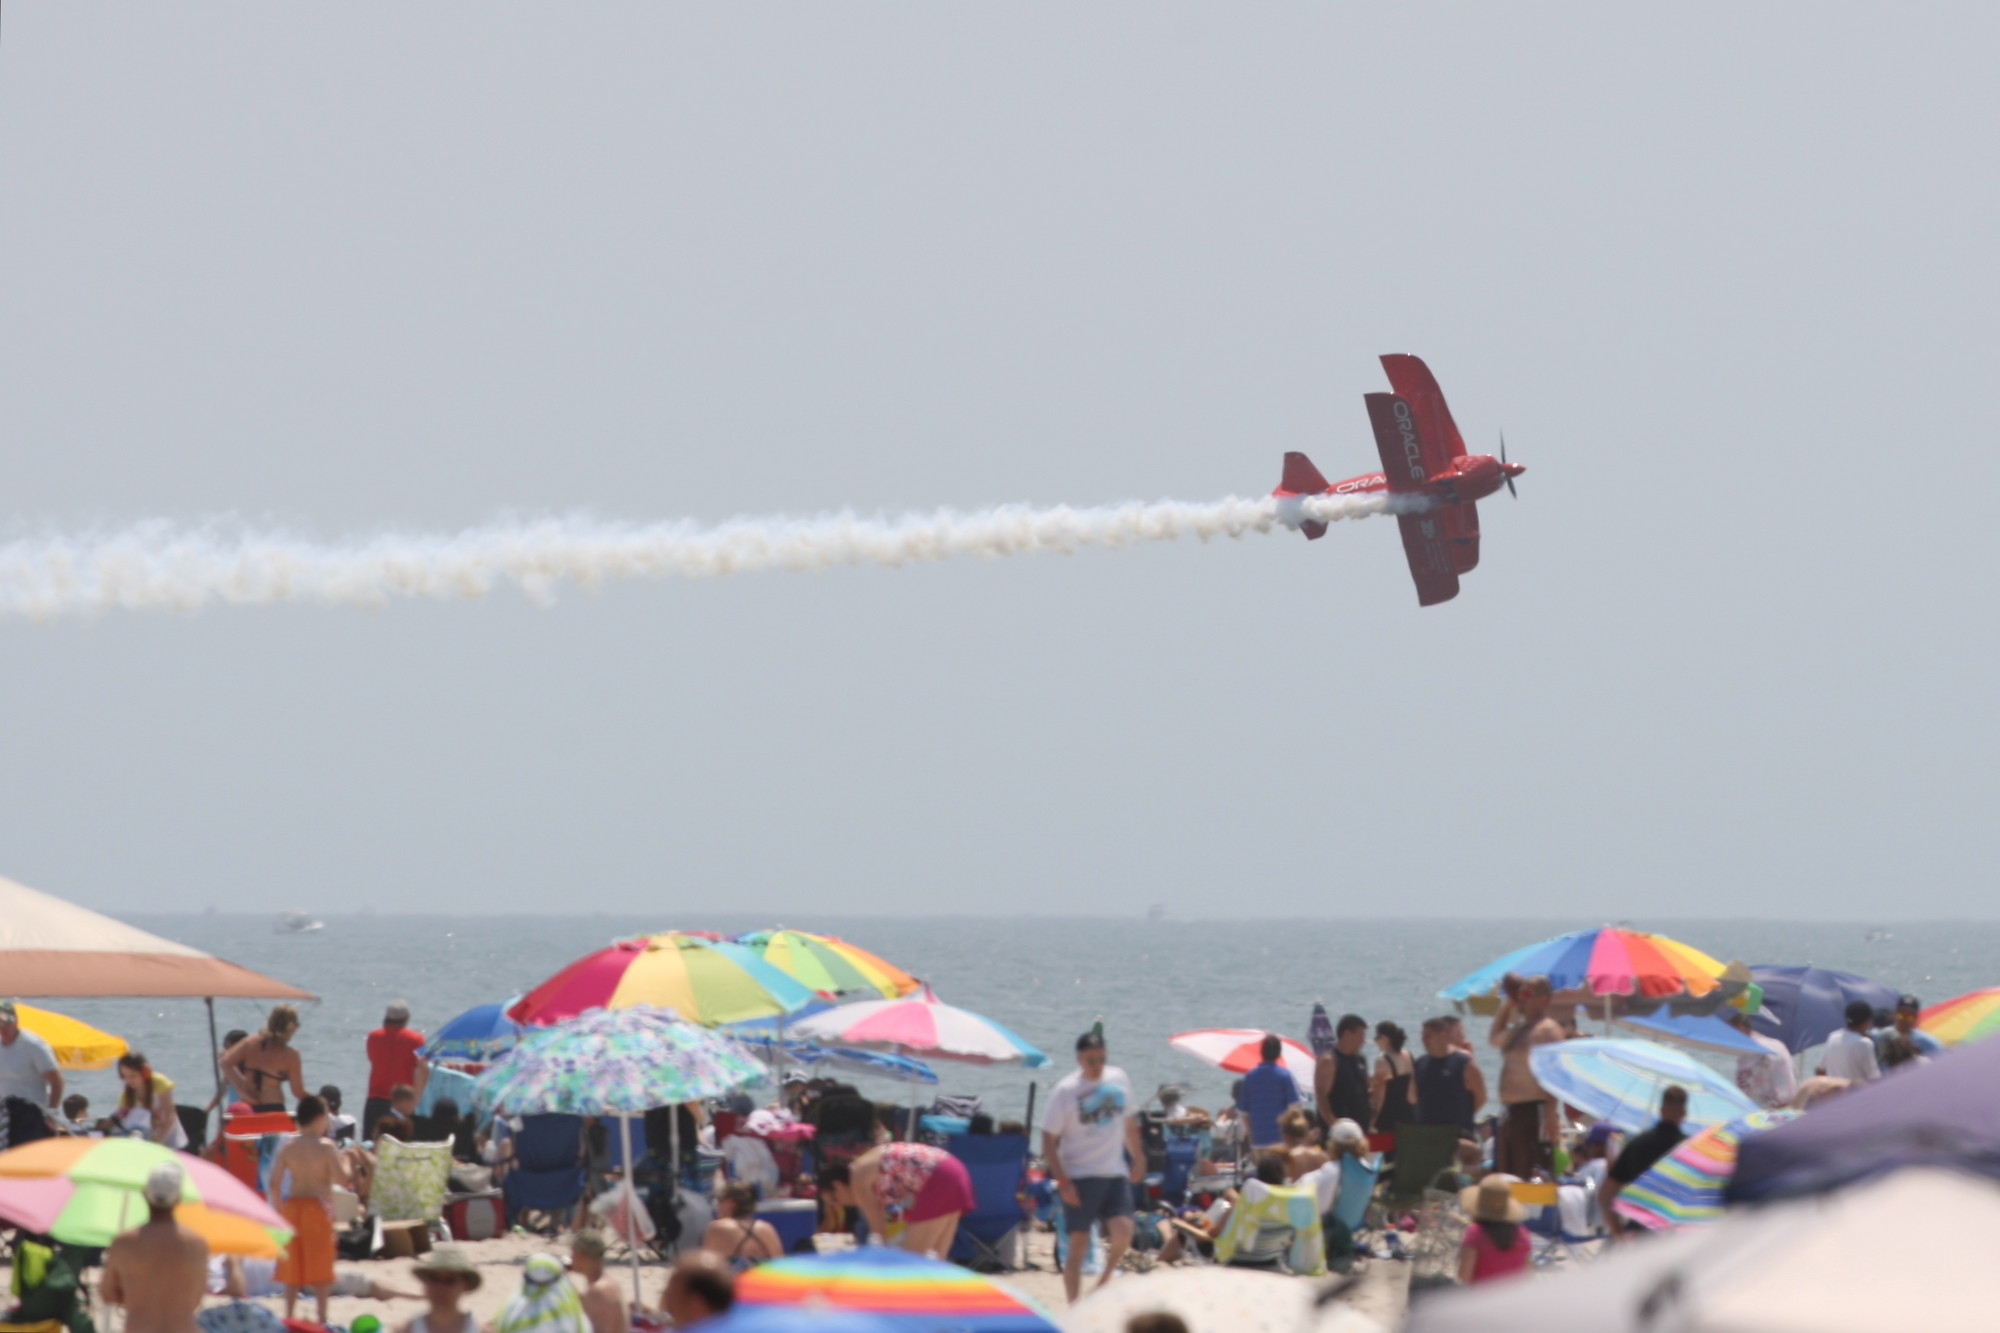 The Geico Sktypers soar over the Jones Beach shoreline as they type giant messages and perform a low level precision formation during the annual Bethpage Air Show over Memorial Day weekend. The Royal Canadian Air Force headlines this year's event.